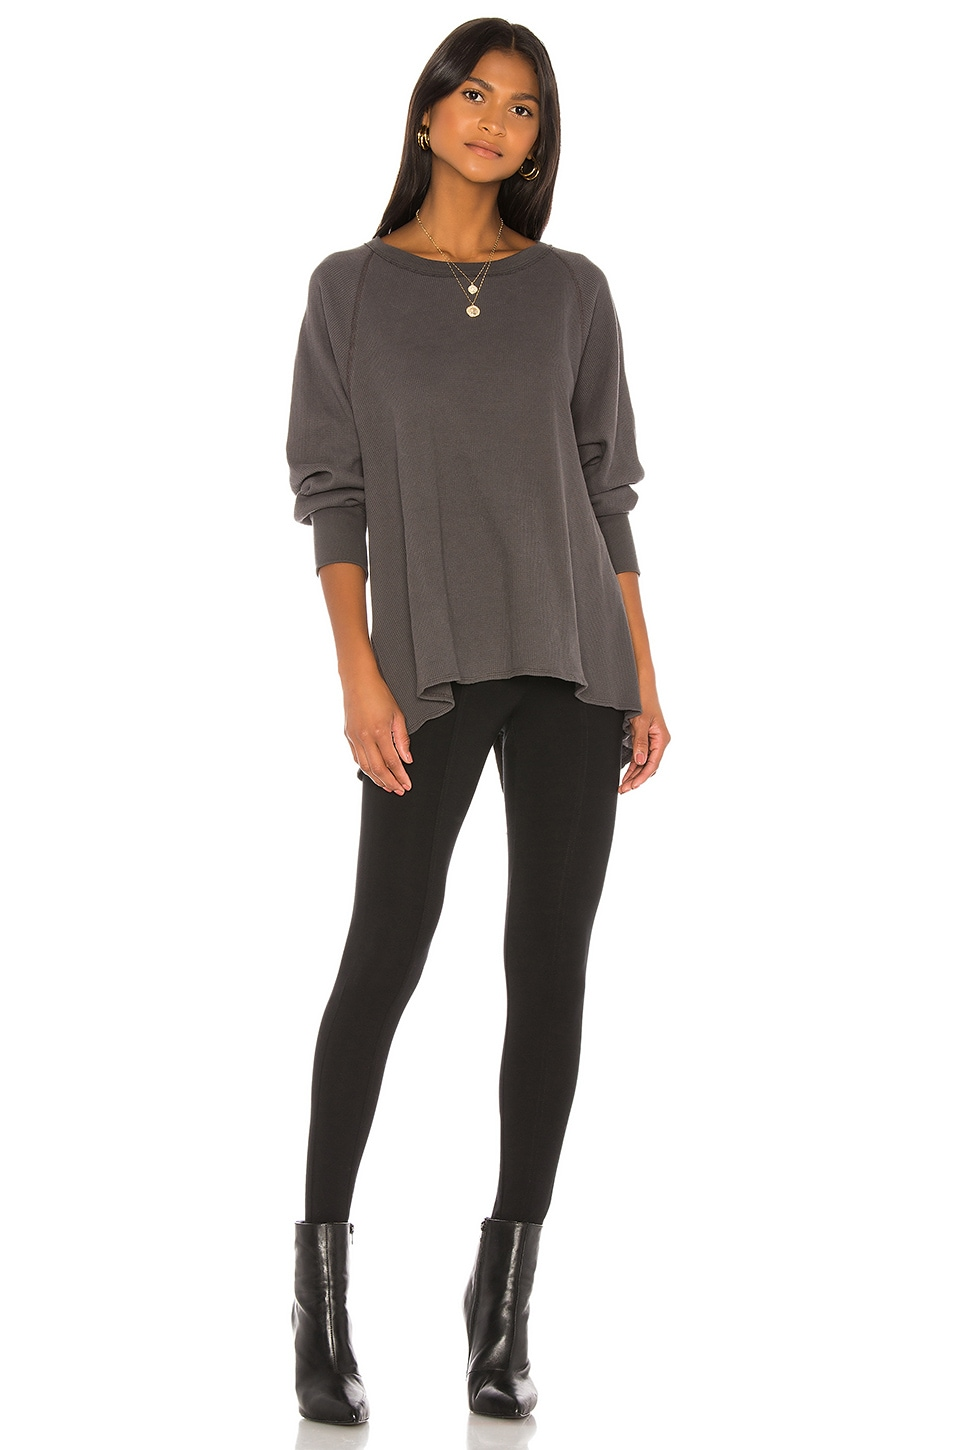 Free People Accessories Amelia Thermal